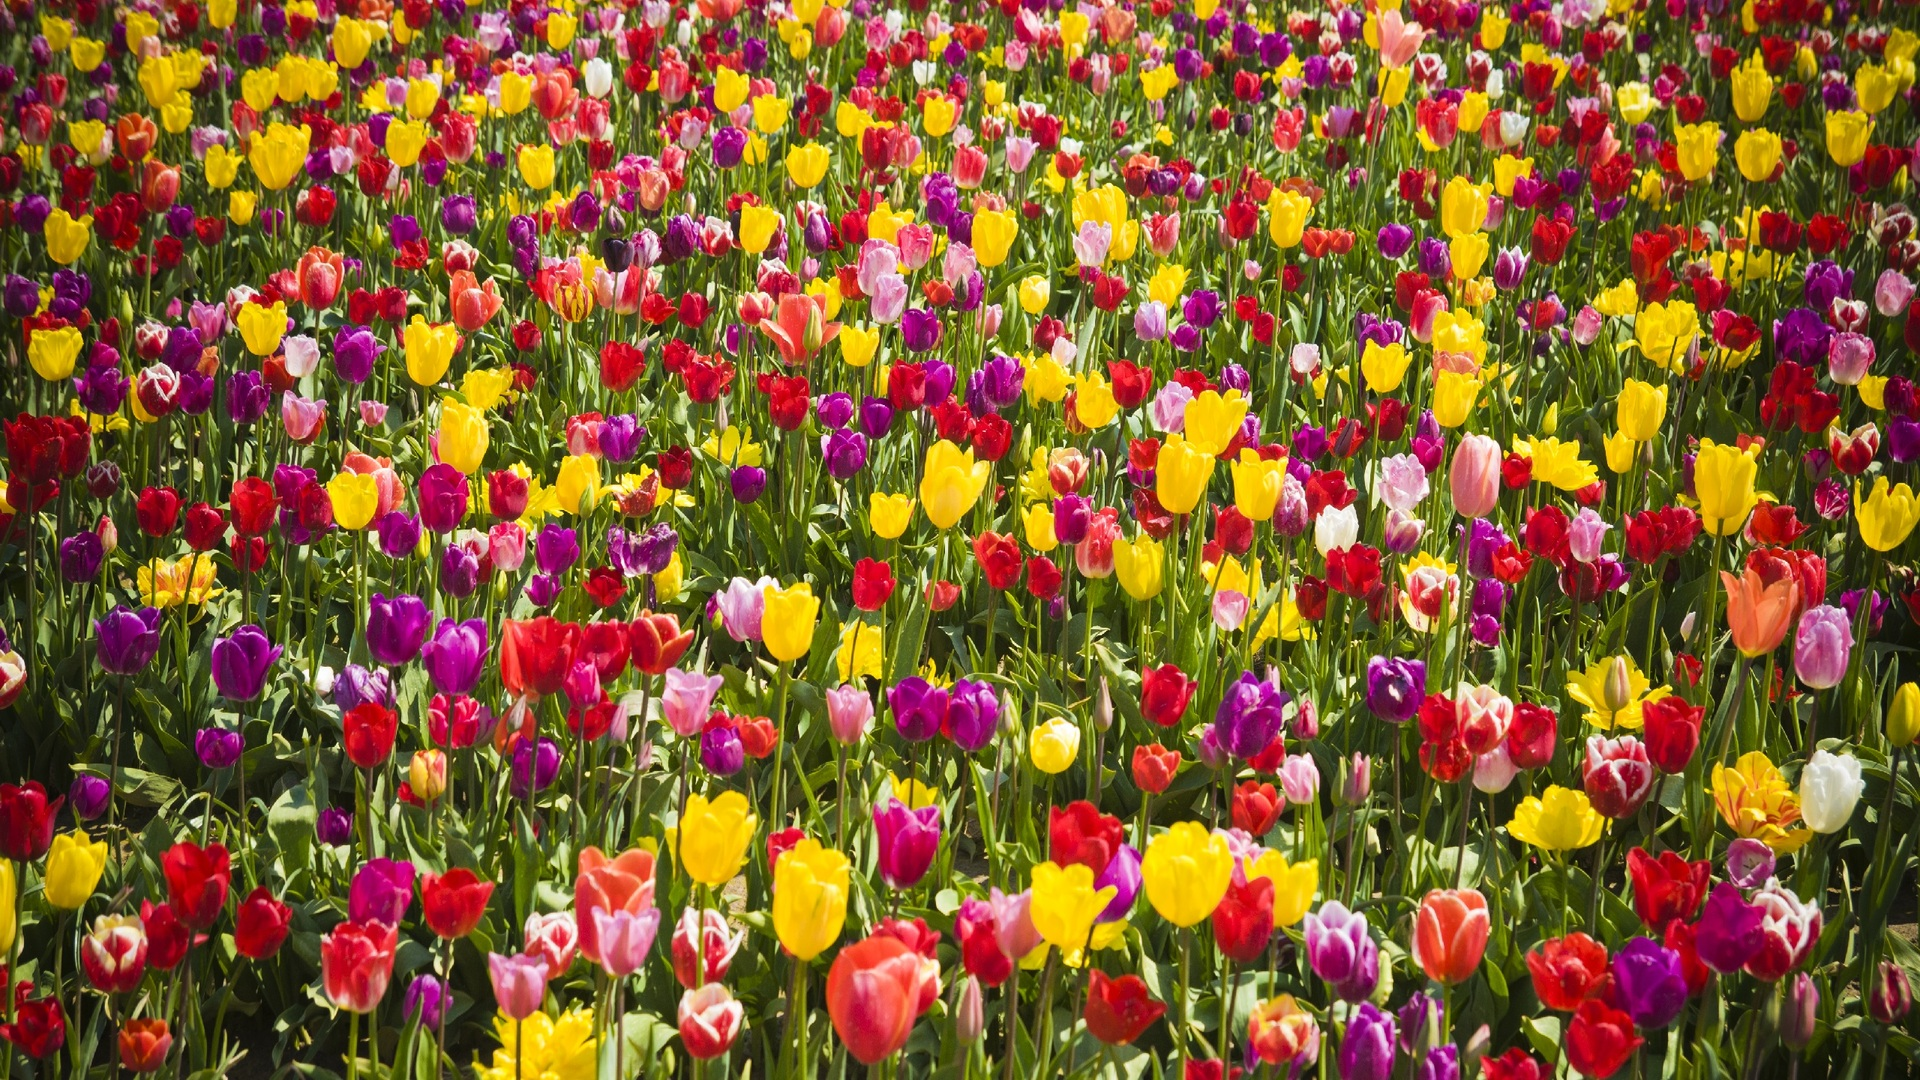 tulips-flower-wallpaper-1920x1080-1155